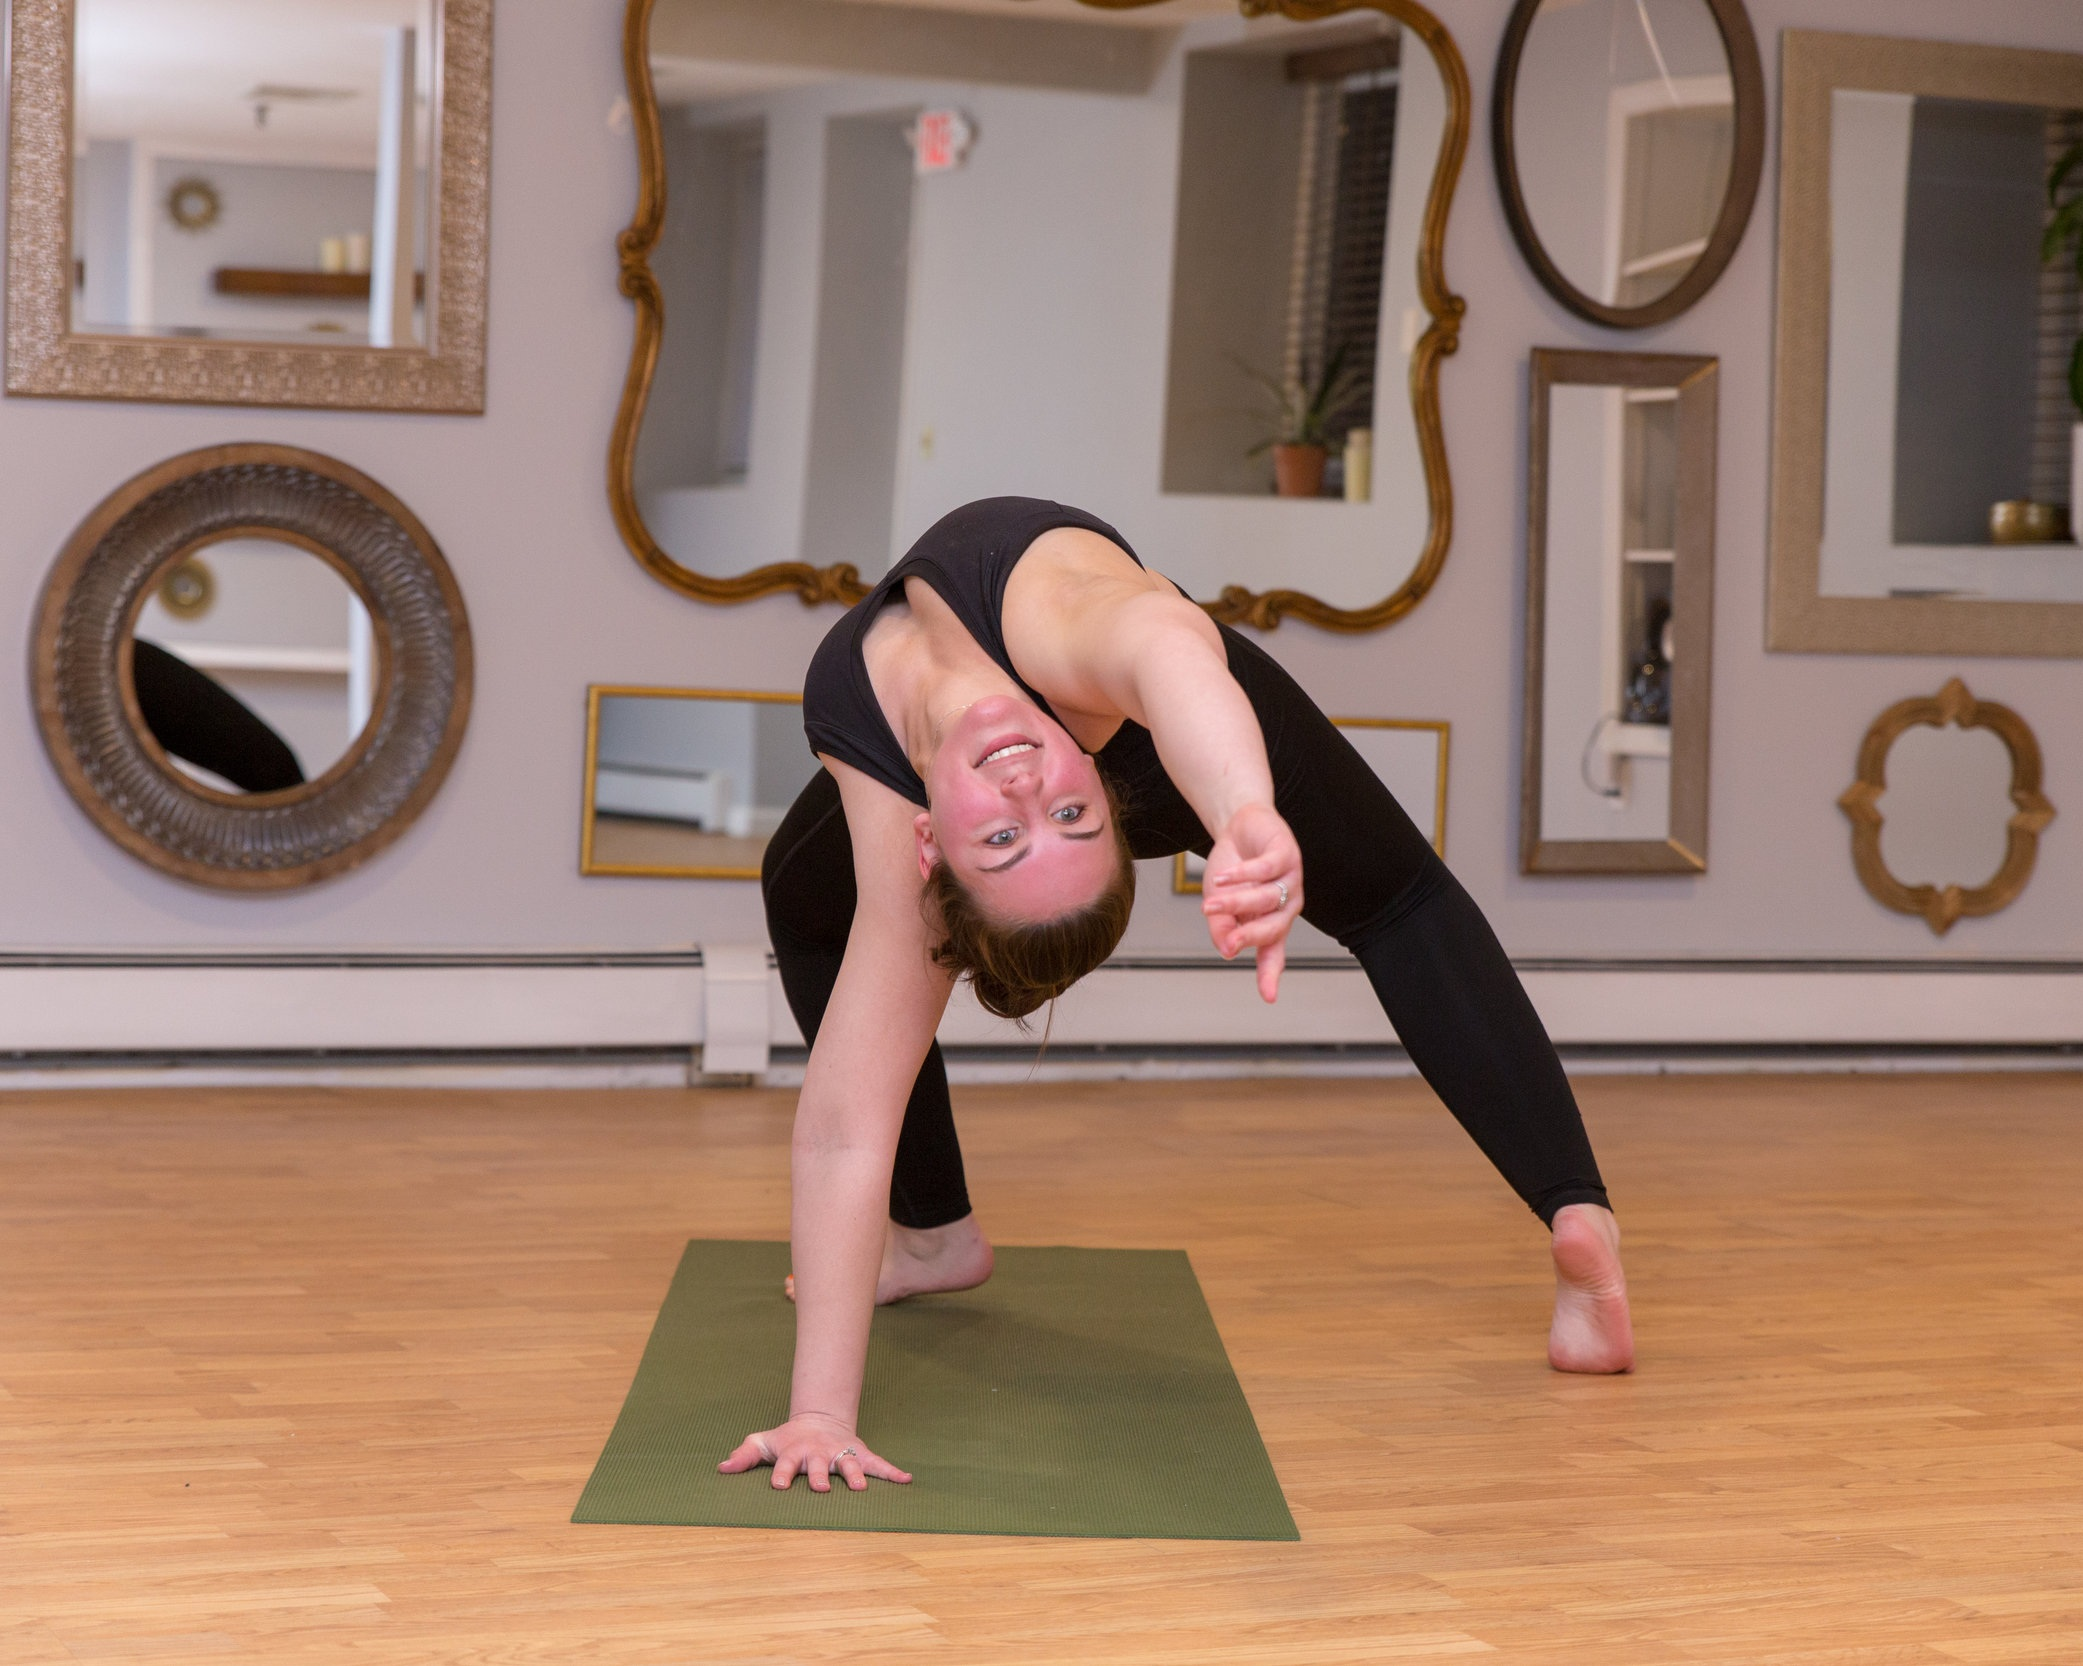 Riley Cammett  Riley Cammett began practicing yoga as a way to remain calm, focused, and in tune with herself. She has been practicing the physical asanas of yoga for the majority of her life but began to deepen her spiritual path of meditation and mindfulness for the past 3 years. Through the Vinyasa style, she began releasing her left over physical energy through the practice, as well as truly beginning to feel one with herself.  She has been trained in Vinyasa yoga since April of 2017. She achieved her RYT-200 from Prasada Yoga Center in North Hampton, NH and was trained by Dana Lincoln and Michelle Plante.  She studied Reiki under her Reiki Master Teacher, Jocelyn Boucher, the North Shore Medium, to enhance her spiritual practice and path. She received her Reiki 1 practitioner certificate in August of 2018. It is her hopes that by adding Reiki to her classes, she can create an atmosphere of physical asanas coupled with spirituality that leads to deepened experience in her class for all those to experience.  She is very open with her personal practice and bases her classes and personal sessions on not only what she feels her fellow yogis need physically, but she aims to calm the minds of her students while helping them to find their inner peace. She works with the form and alignment of her students, Pranayama - breathing techniques, as well as meditation and Reiki to intensify their experience. It is her goal to assist everyone that comes in her paths with finding their true divine by restoring their spiritual and physical process